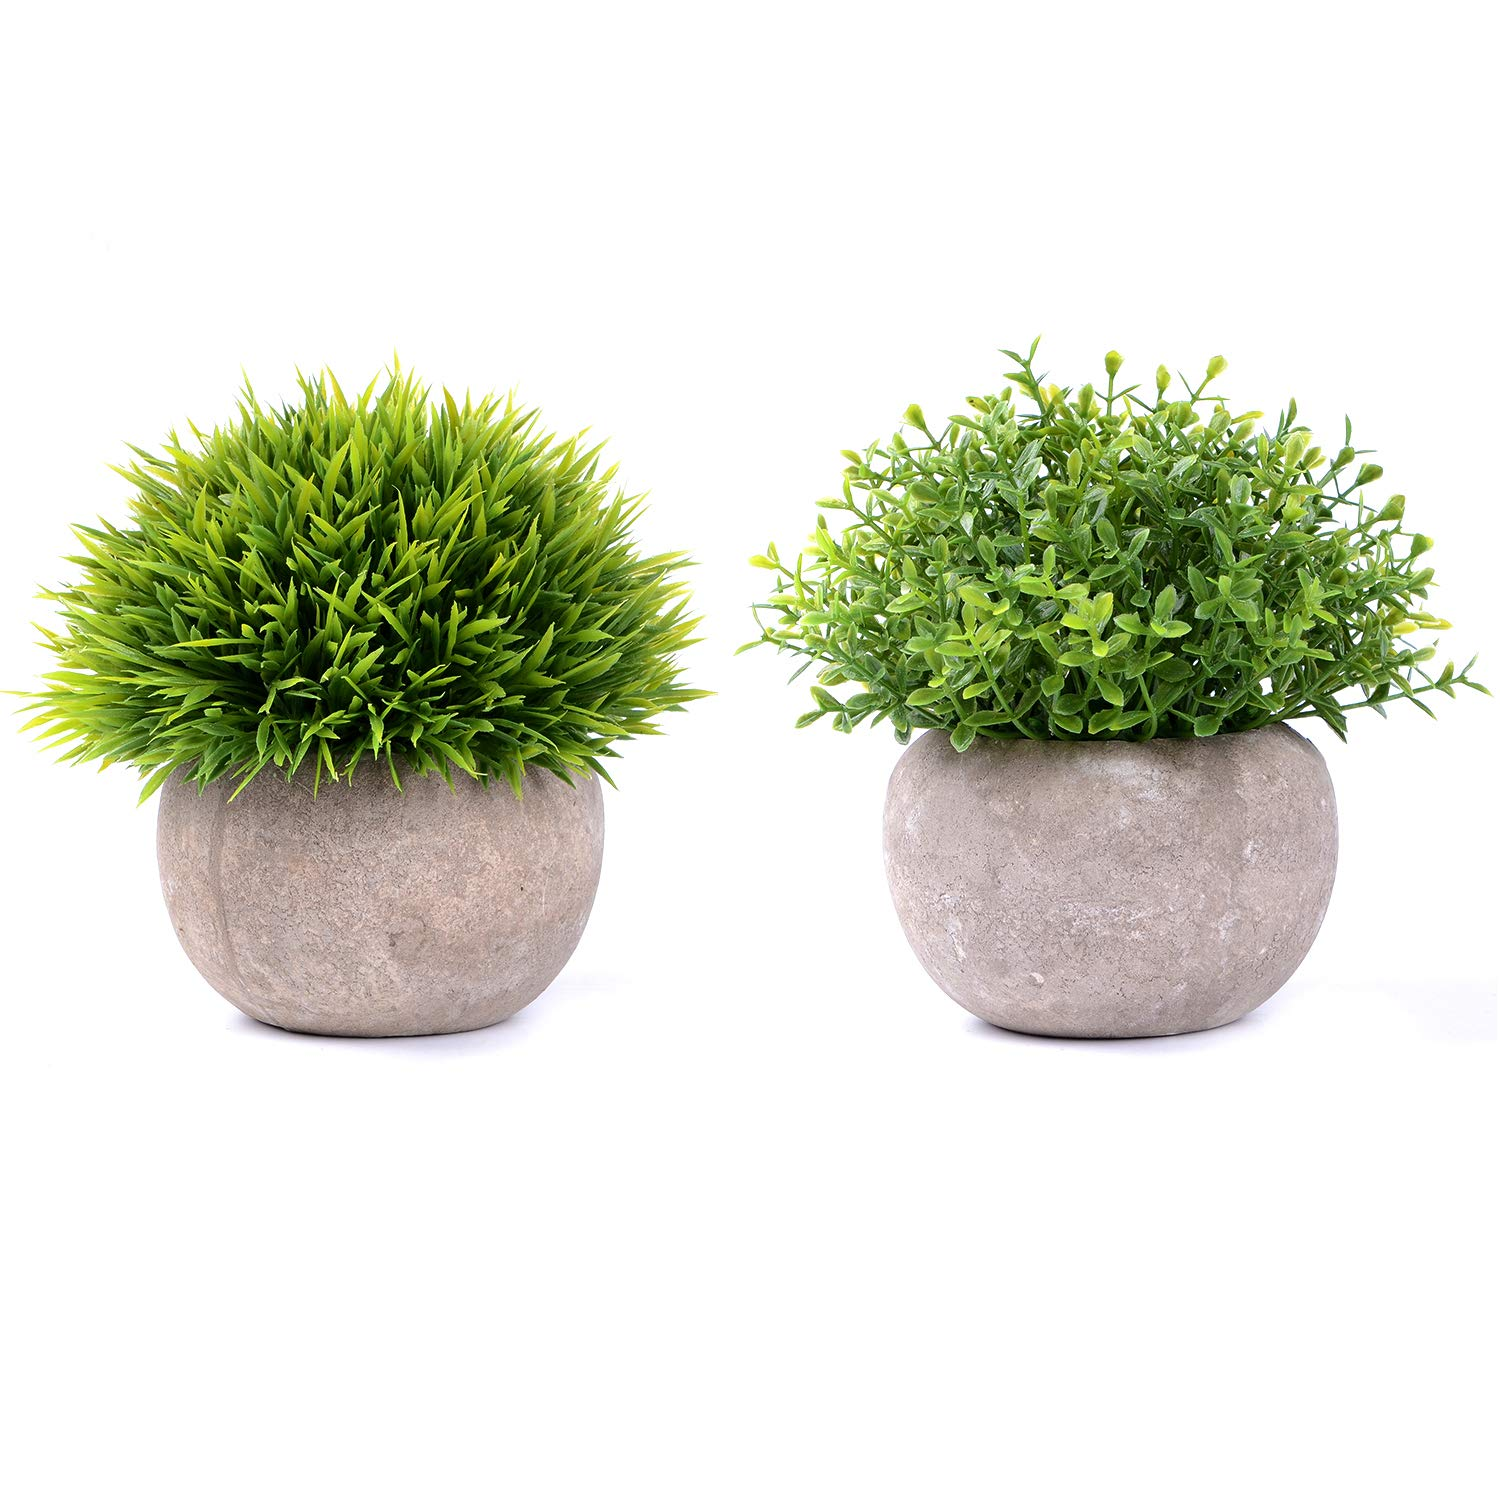 Artiflr Small Artificial Potted Plants - 2 Pack Mini Fake Green Plants with Gray Pots for Home Decor